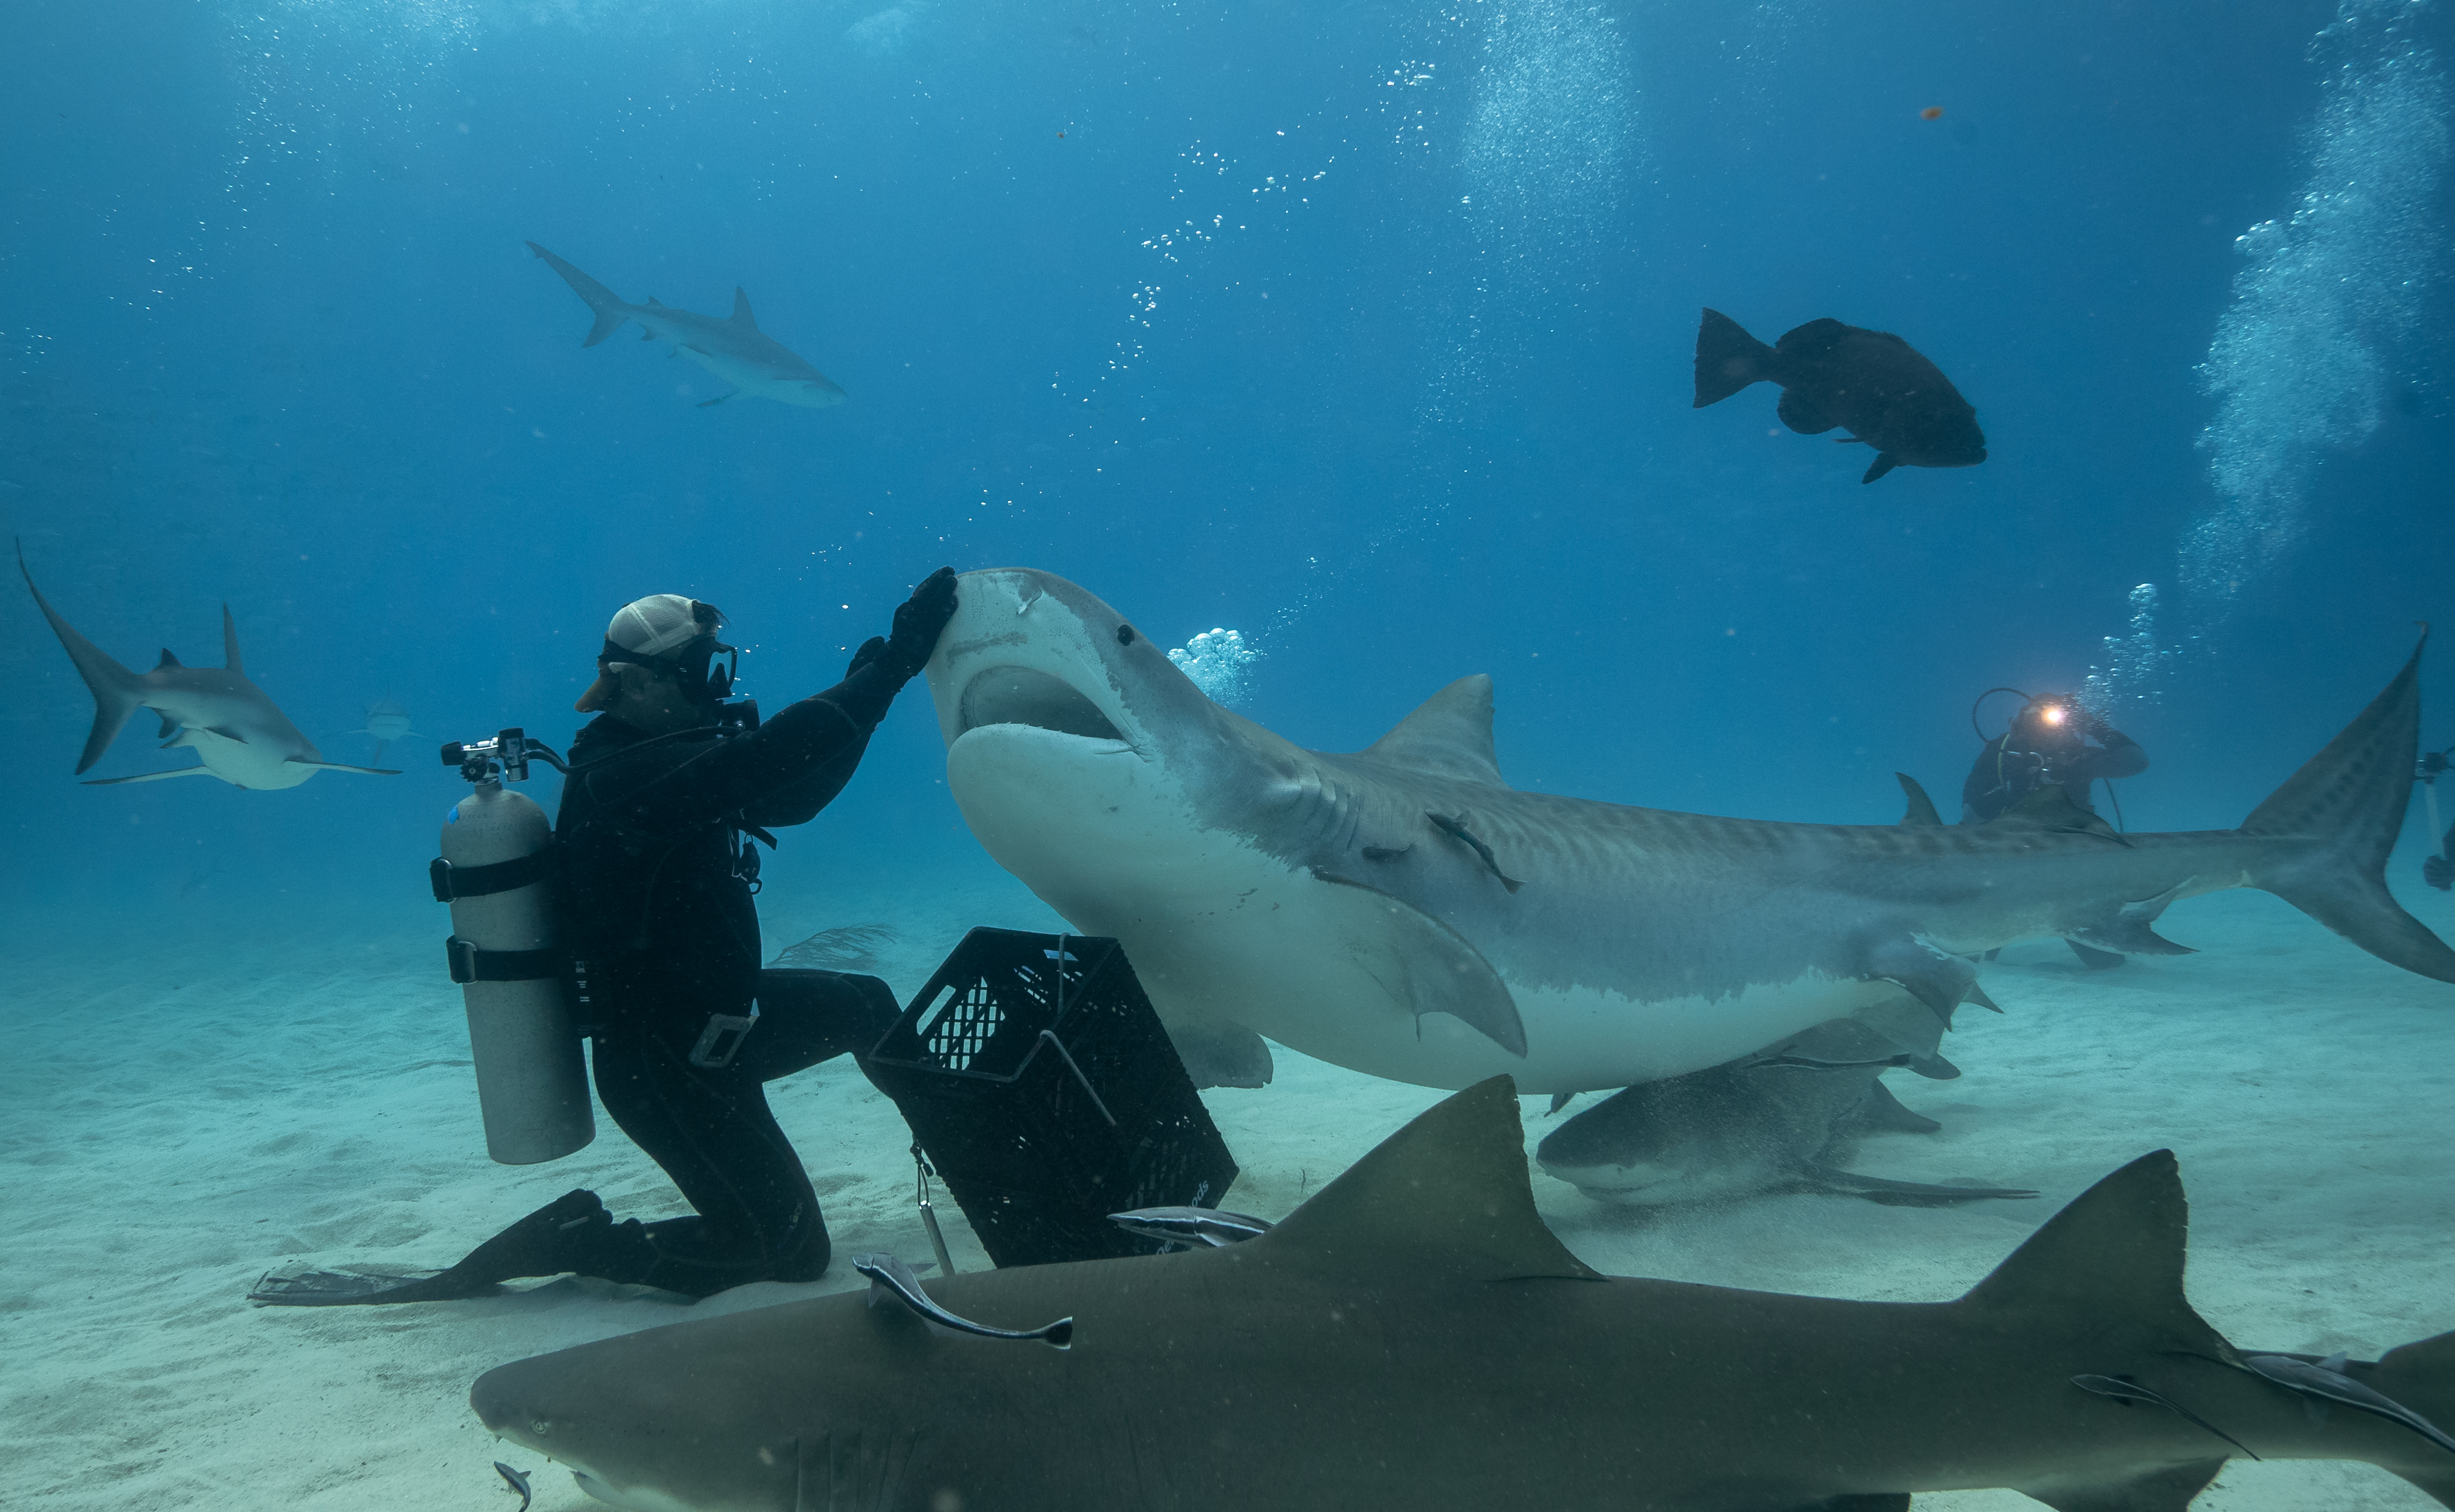 In Photos: Diving with Tiger and Hammerhead Sharks in the